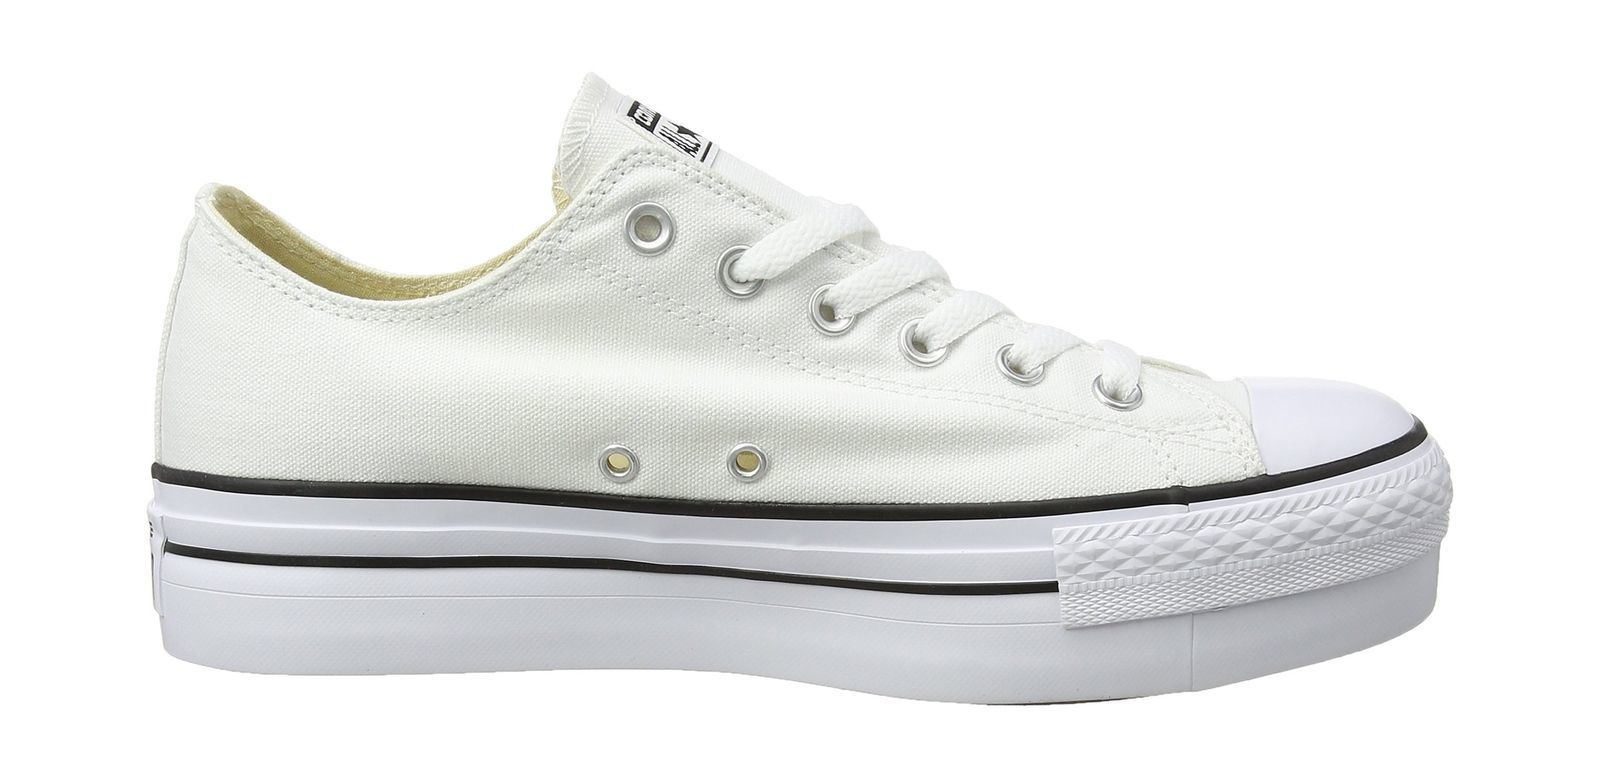 Womens 540265c Gymnastics Shoes, Off White (Bianco), 10 UK Converse